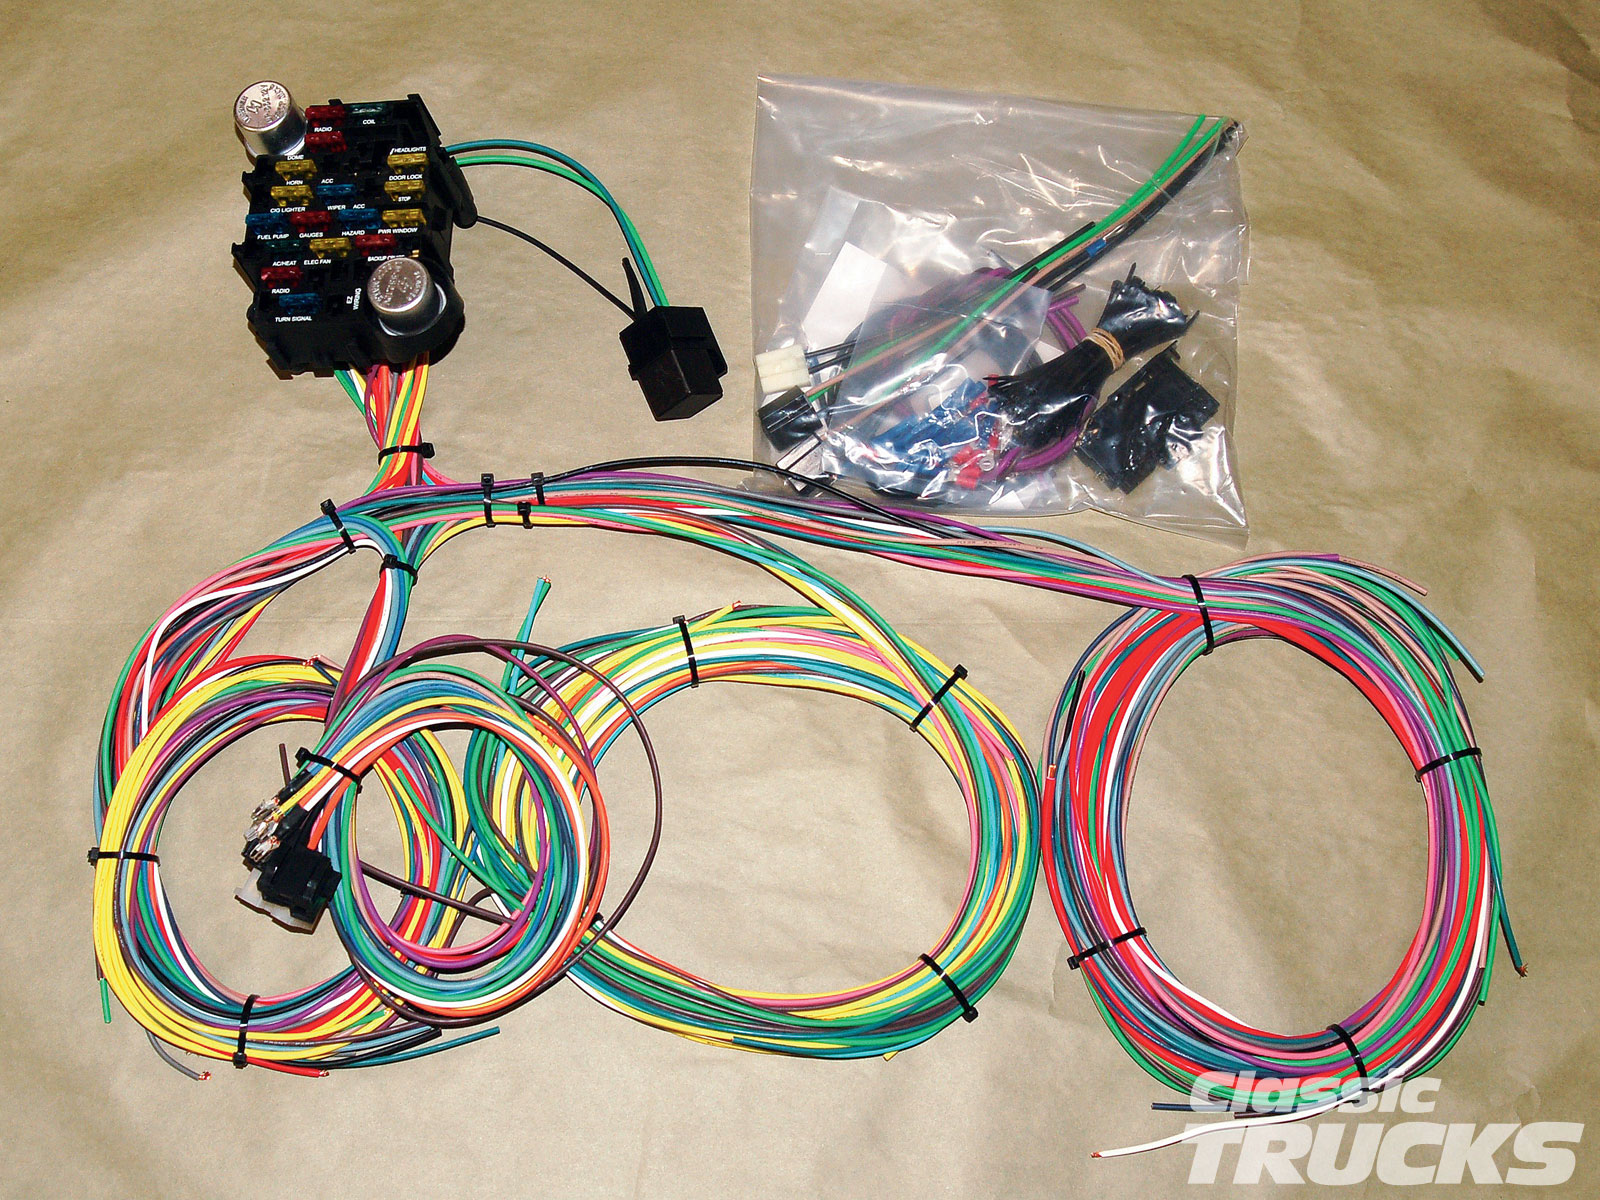 1010clt 02 o aftermarket wiring harness install kit?resize\\\=665%2C499 painless wiring harness australia tamahuproject org universal wiring harness australia at alyssarenee.co